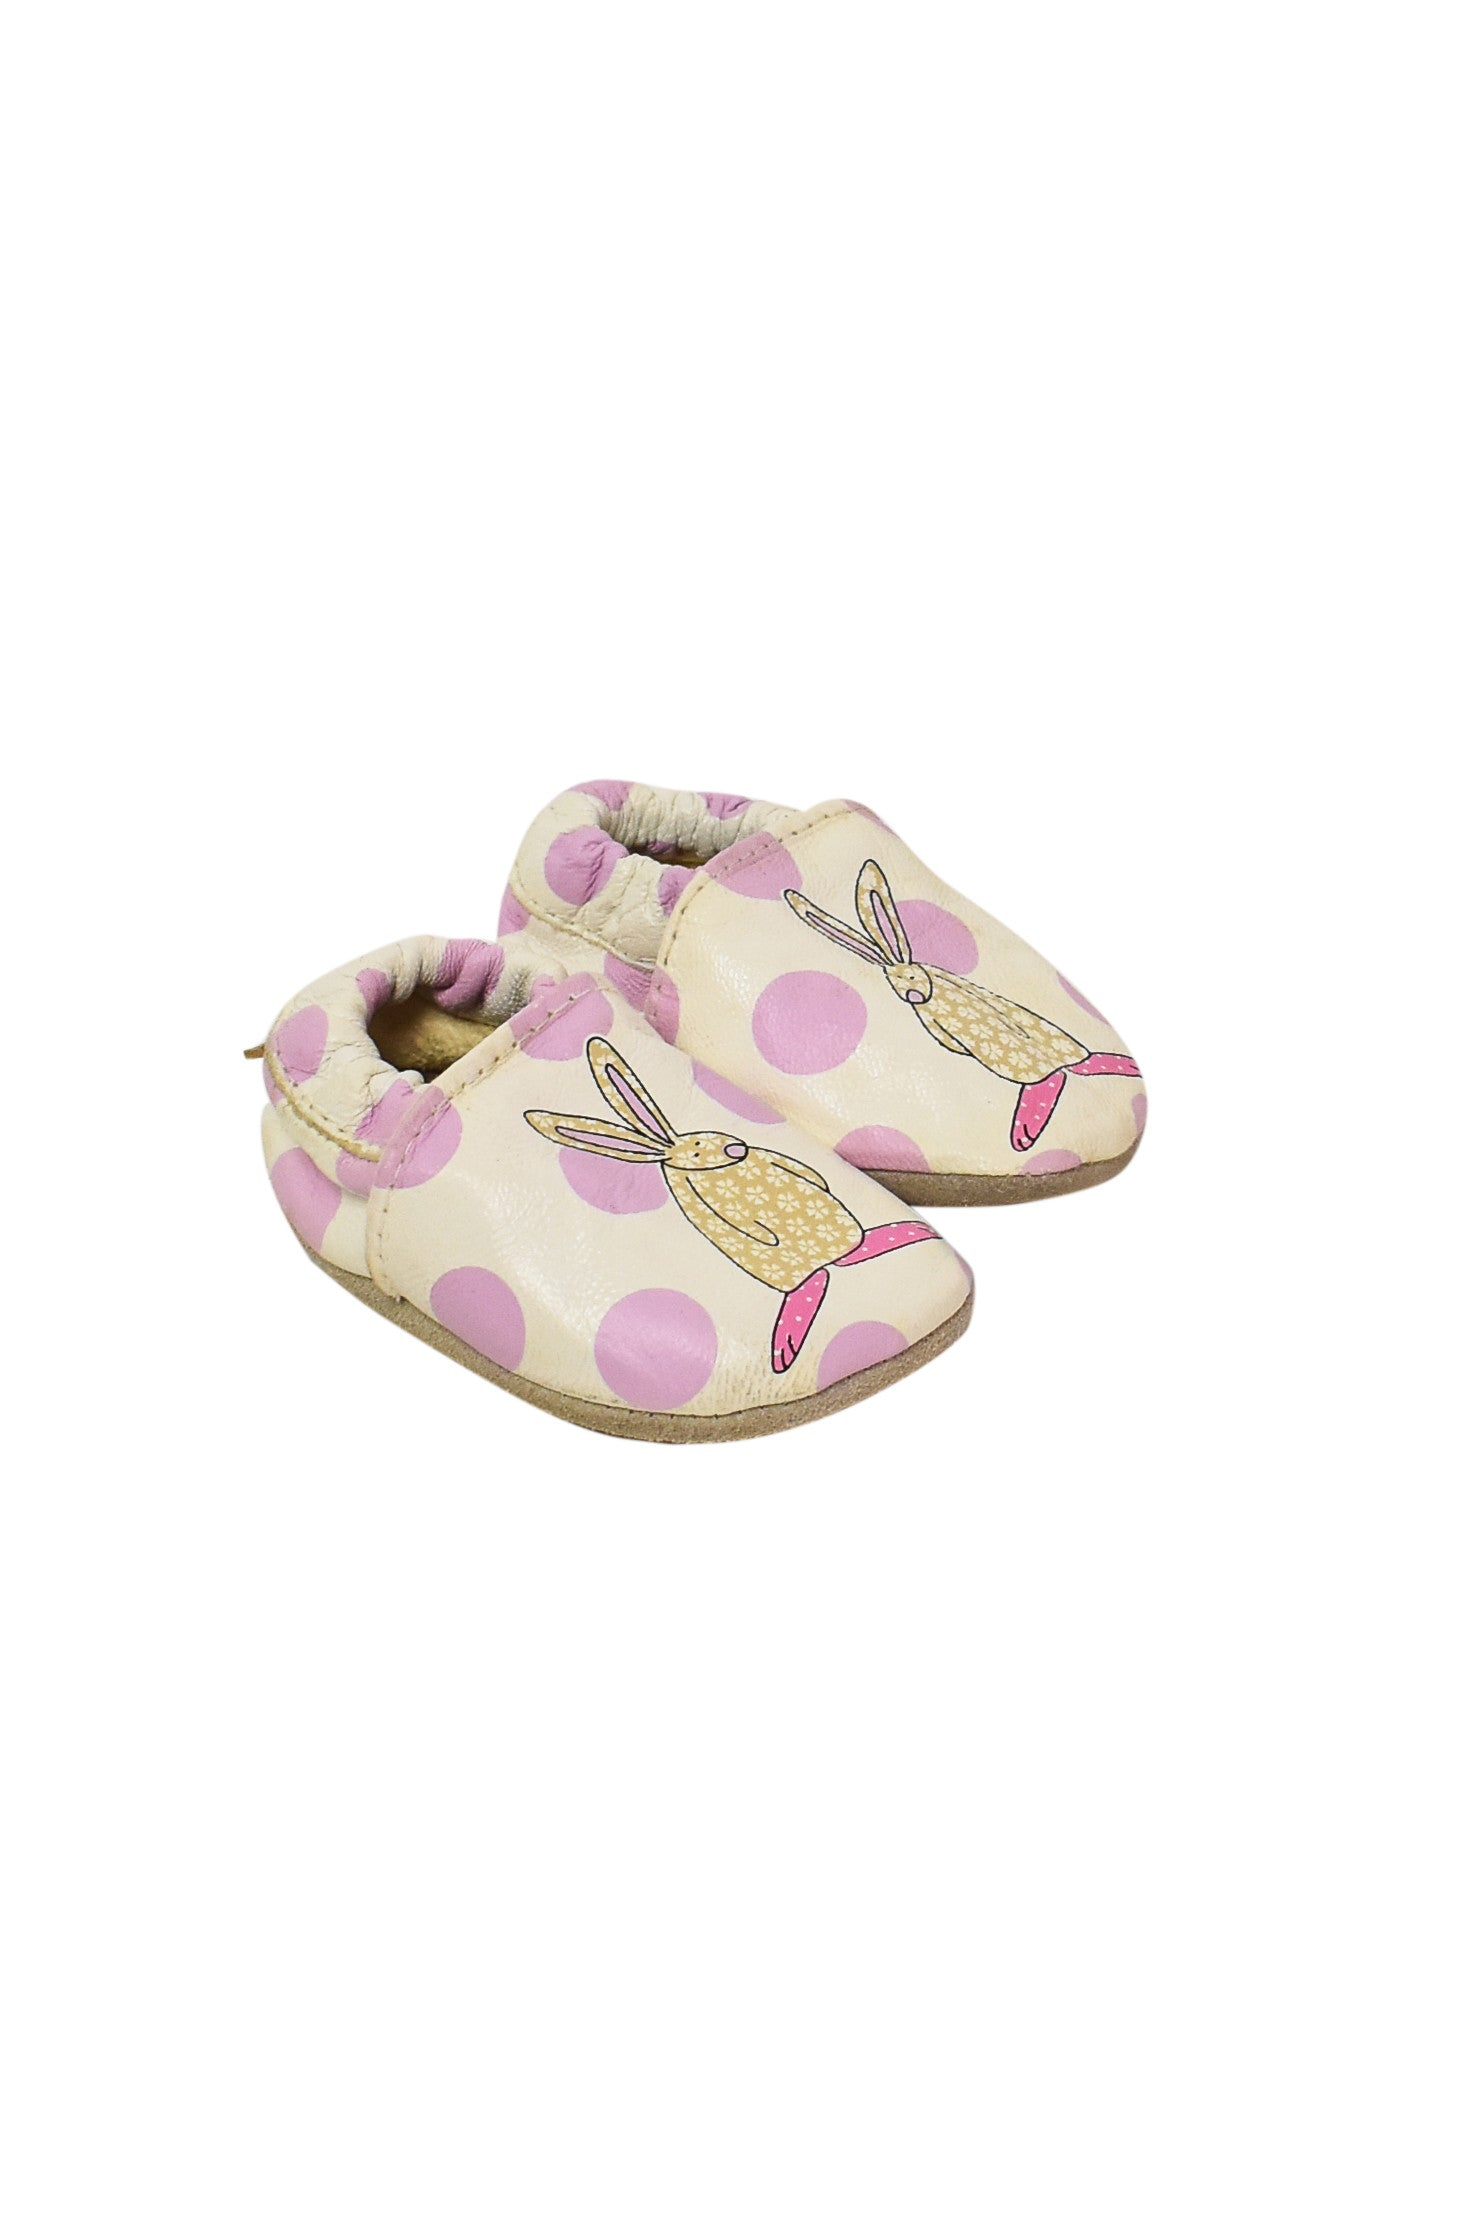 10003798 Rufus Rabbit Baby~Shoes 6-12M at Retykle